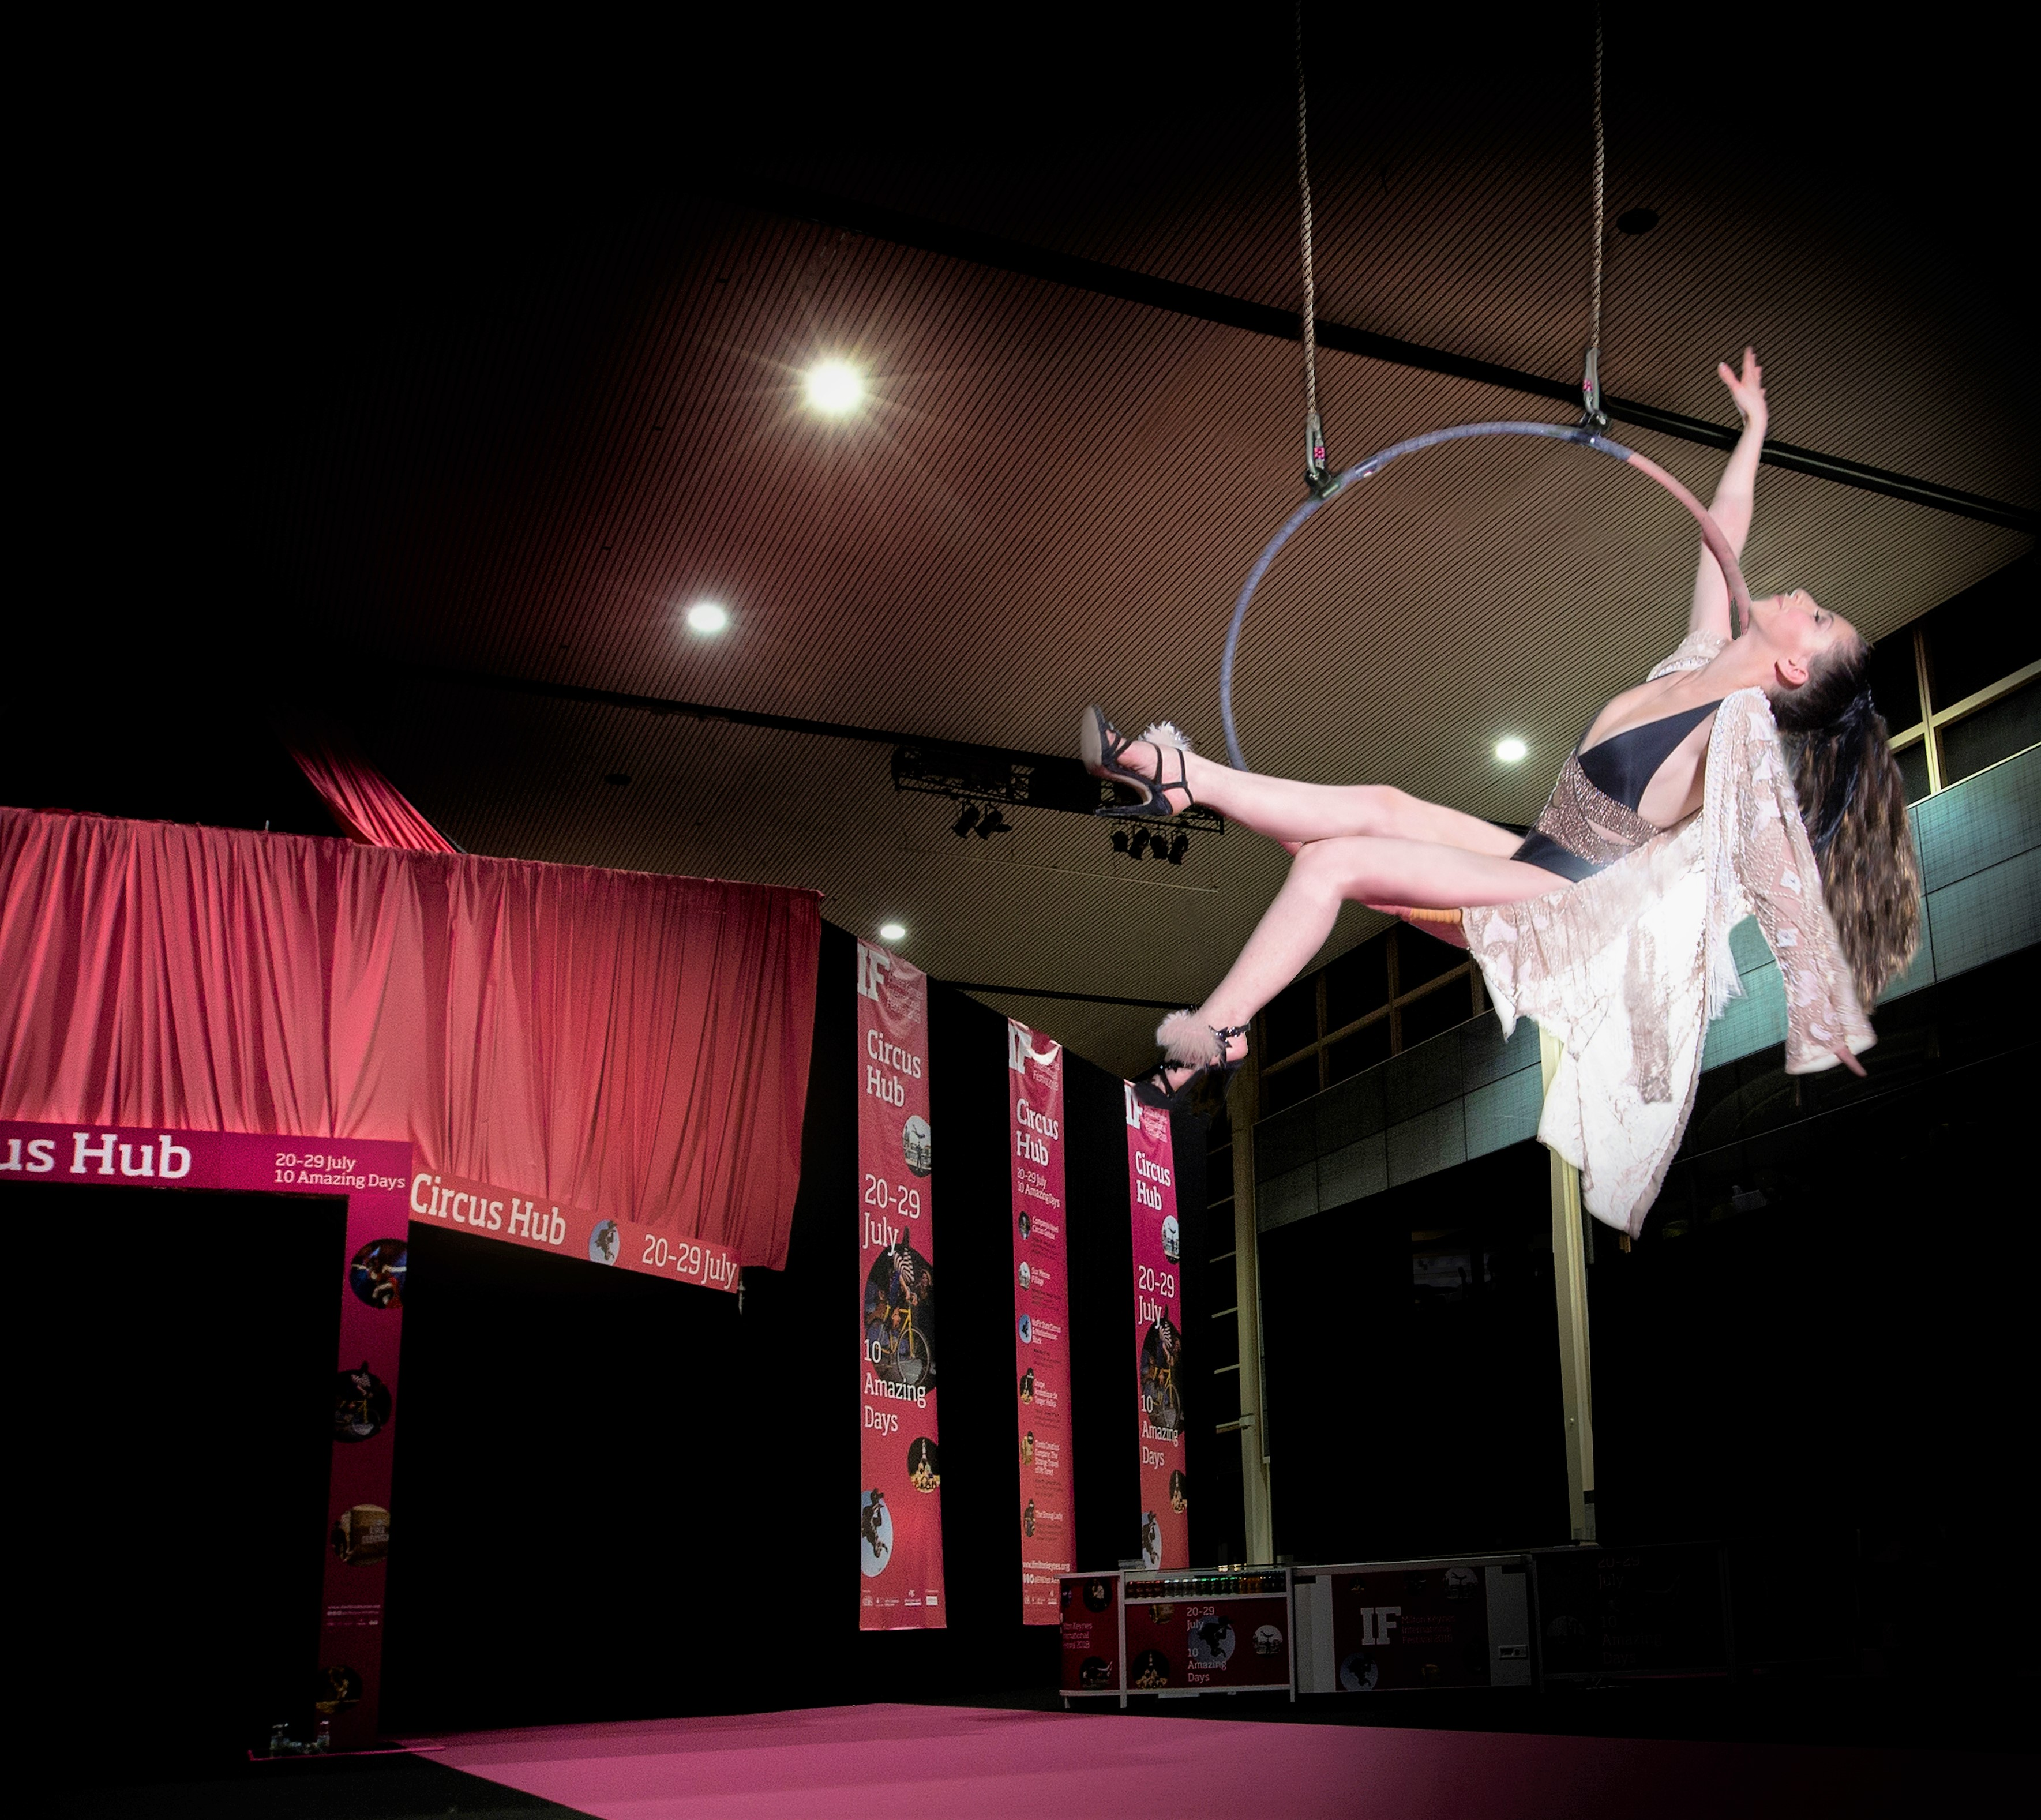 Centremk The Regions Leading Shopping And Leisure Destination Will Play Host This Month To IF Milton Keynes International Festival 2018 With A Circus